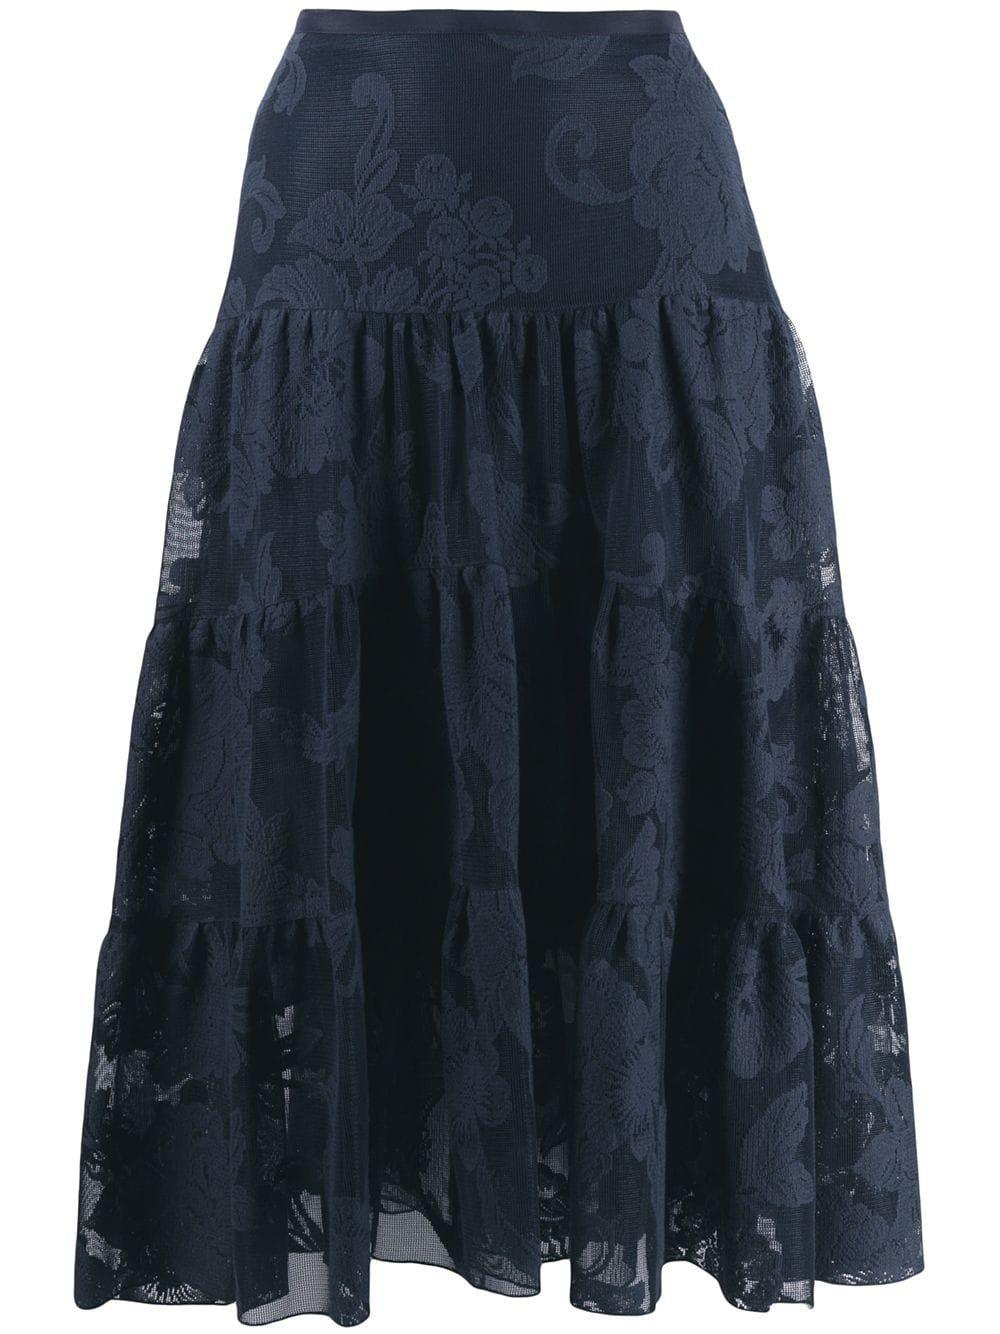 Tiered Lace Midi Skirt